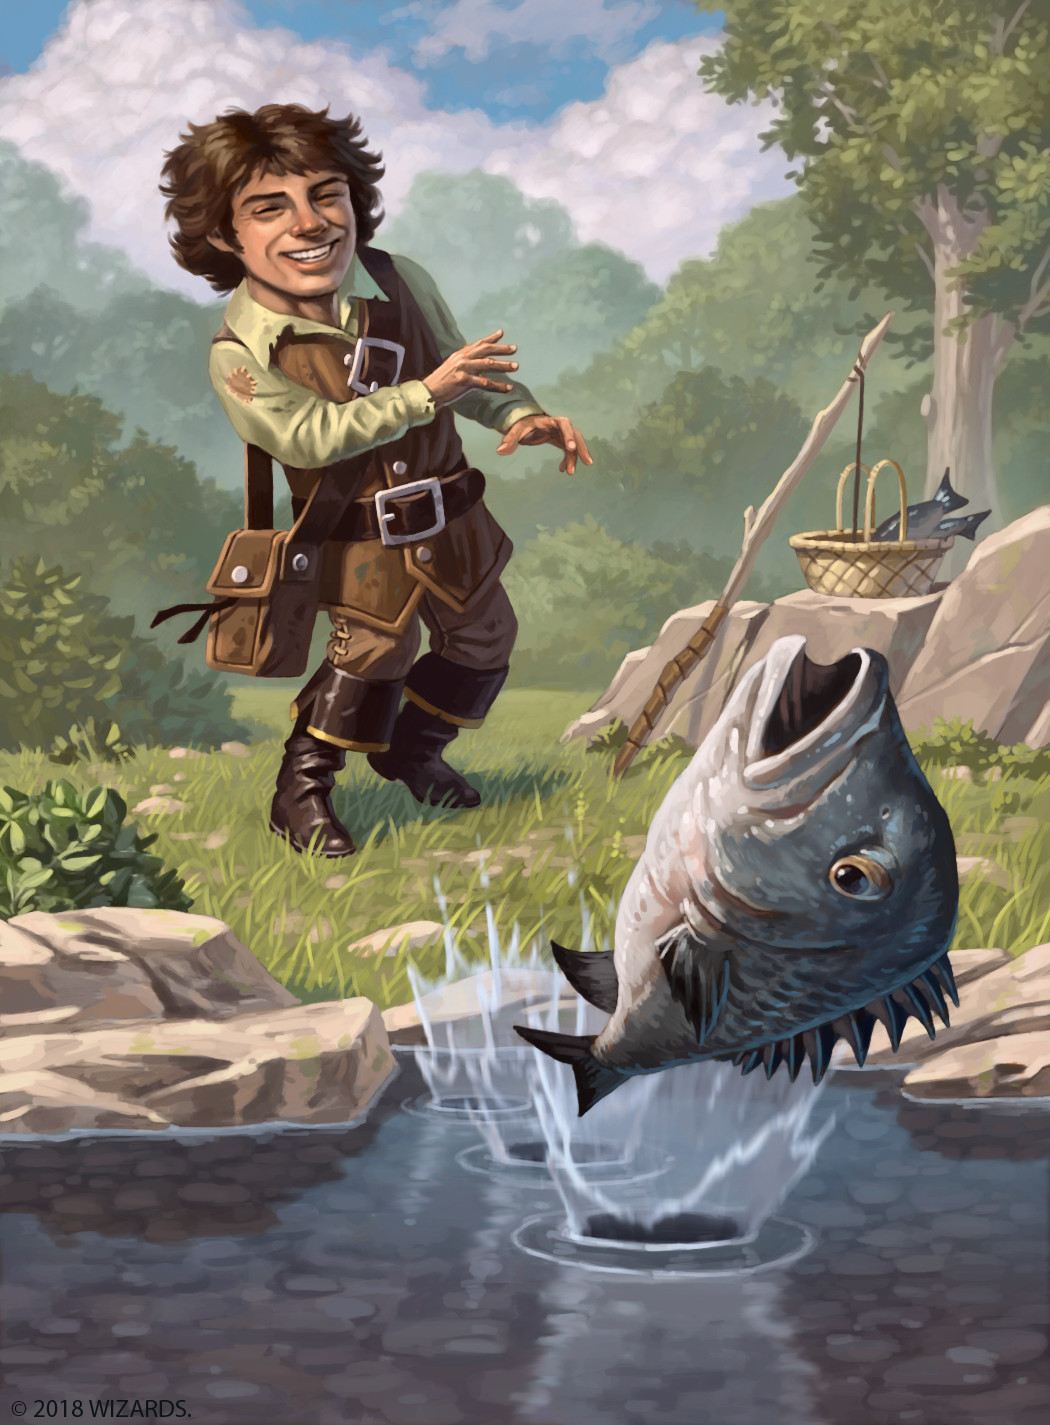 A grinning halfling tosses a fish at a steep angle, bouncing it across the surface of a pond.